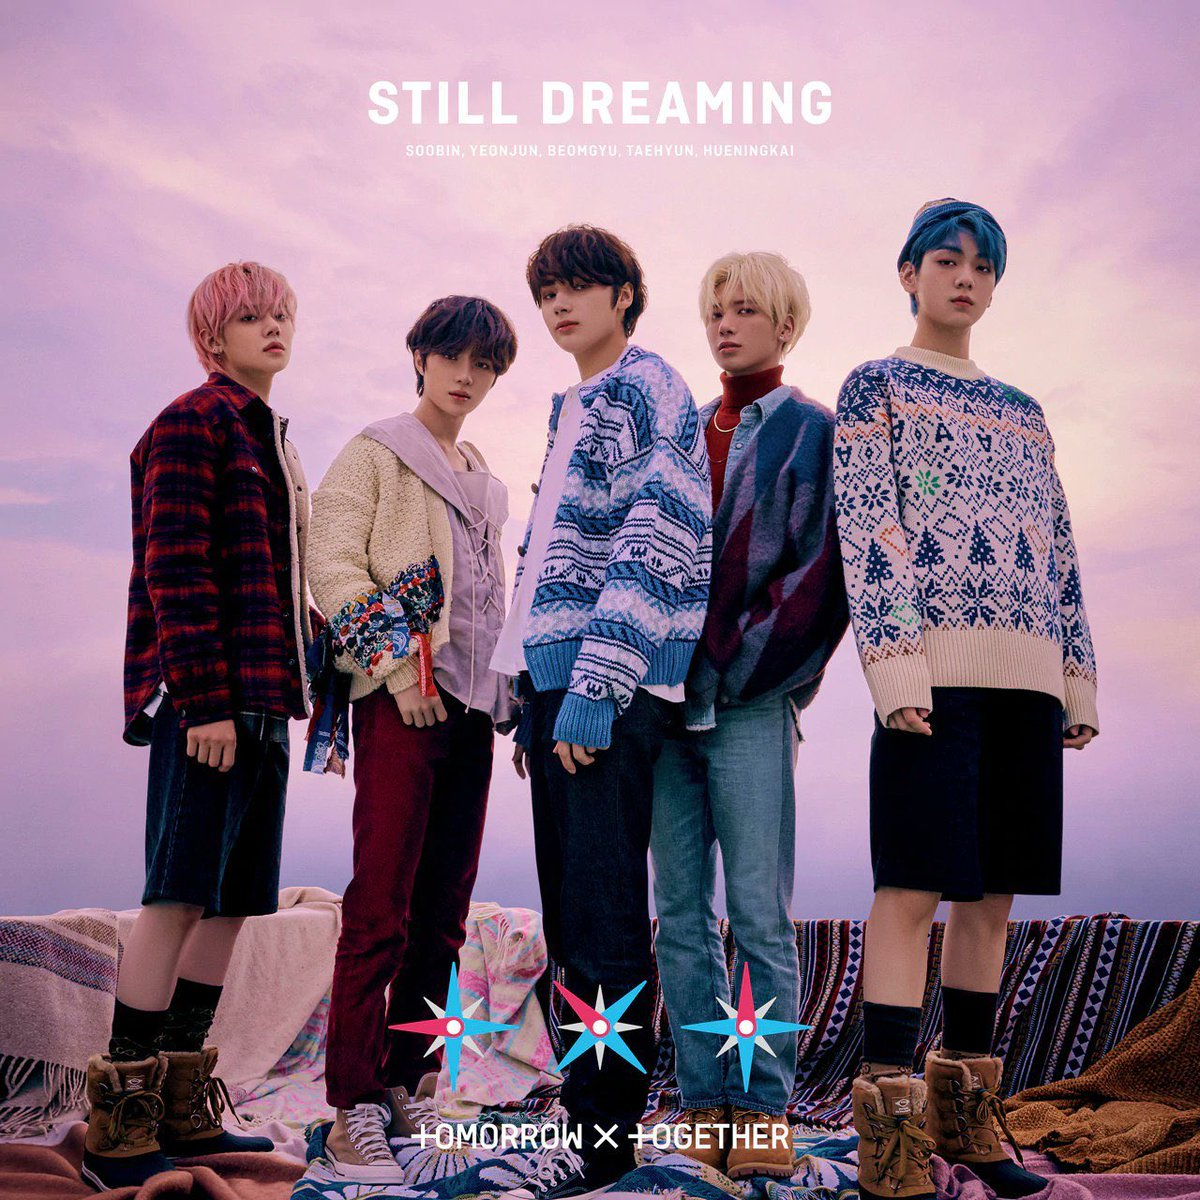 TXT 1st full Japanese album is out now💙☺️ #STILL_DREAMING #STILLDREAMINGwithtxt #StillDreamingOutNow #TXT @TXT_members